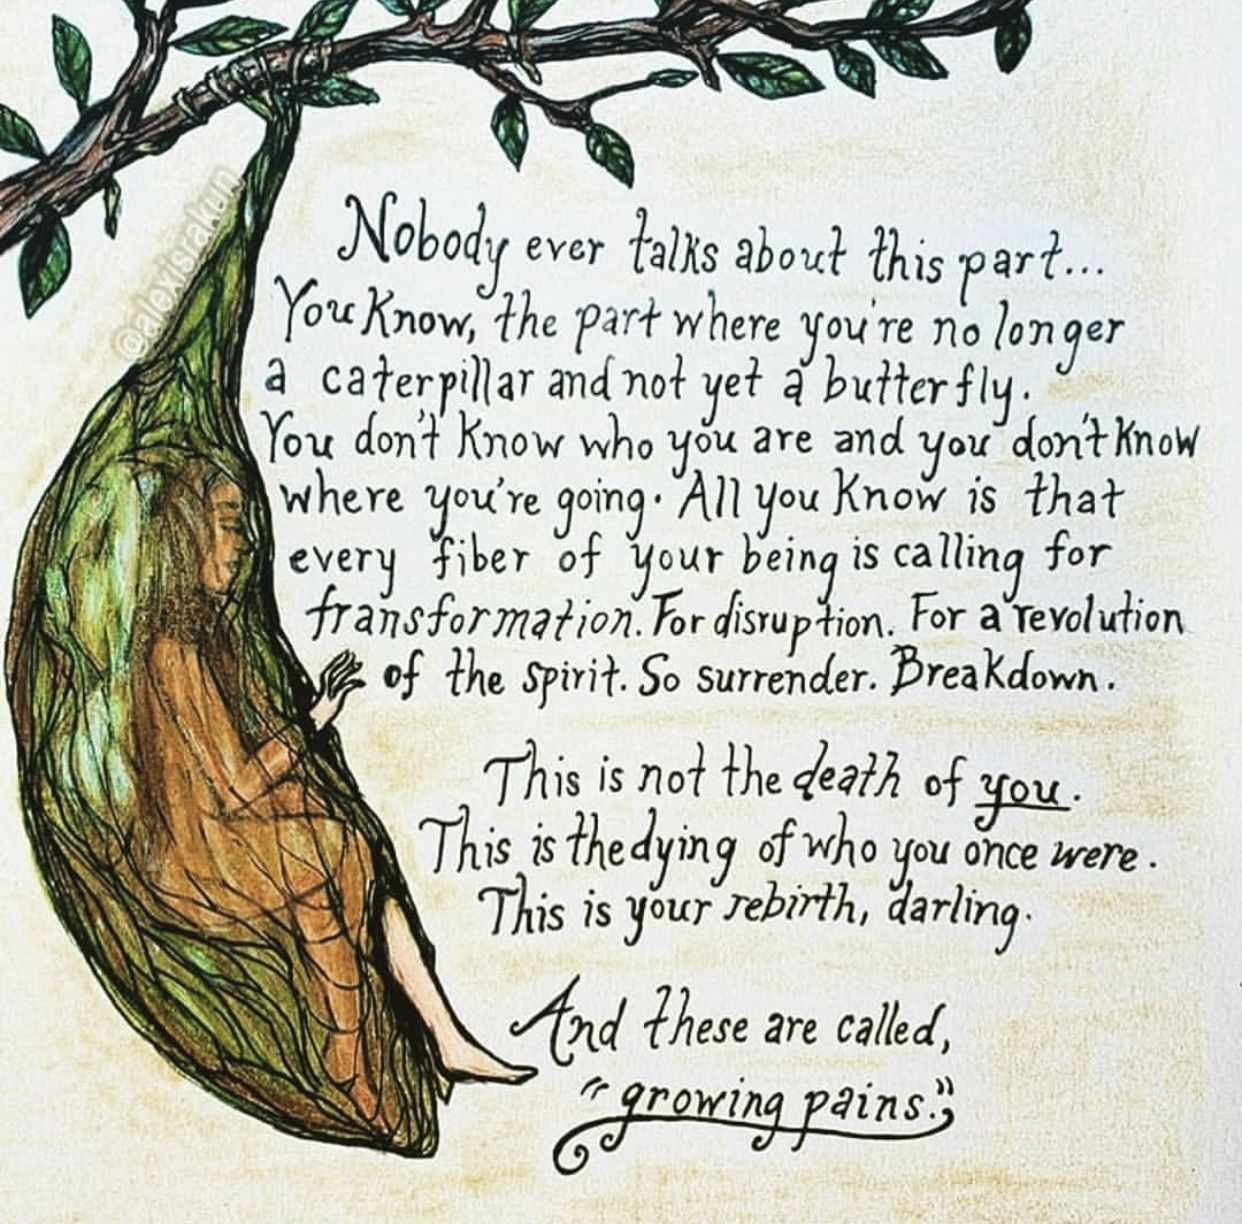 A hand-drawn image of a cocoon hanging from a branch. A woman is beginning to emerge from the cocoon. Text overlays the image: Nobody every talks about this part...You know, the part where you're no longer a catepillar and not yet a butterfly. You don't know who you are and you don't know where you're going. All you know is that every fiber of your being is calling for a transformation. For disruption. For a revolution of the spirit. So surrender. Breakdown. This is not the death of *you*. This is the dying of who you once were. This is your rebirth, darling. And these are called 'growing pains'.